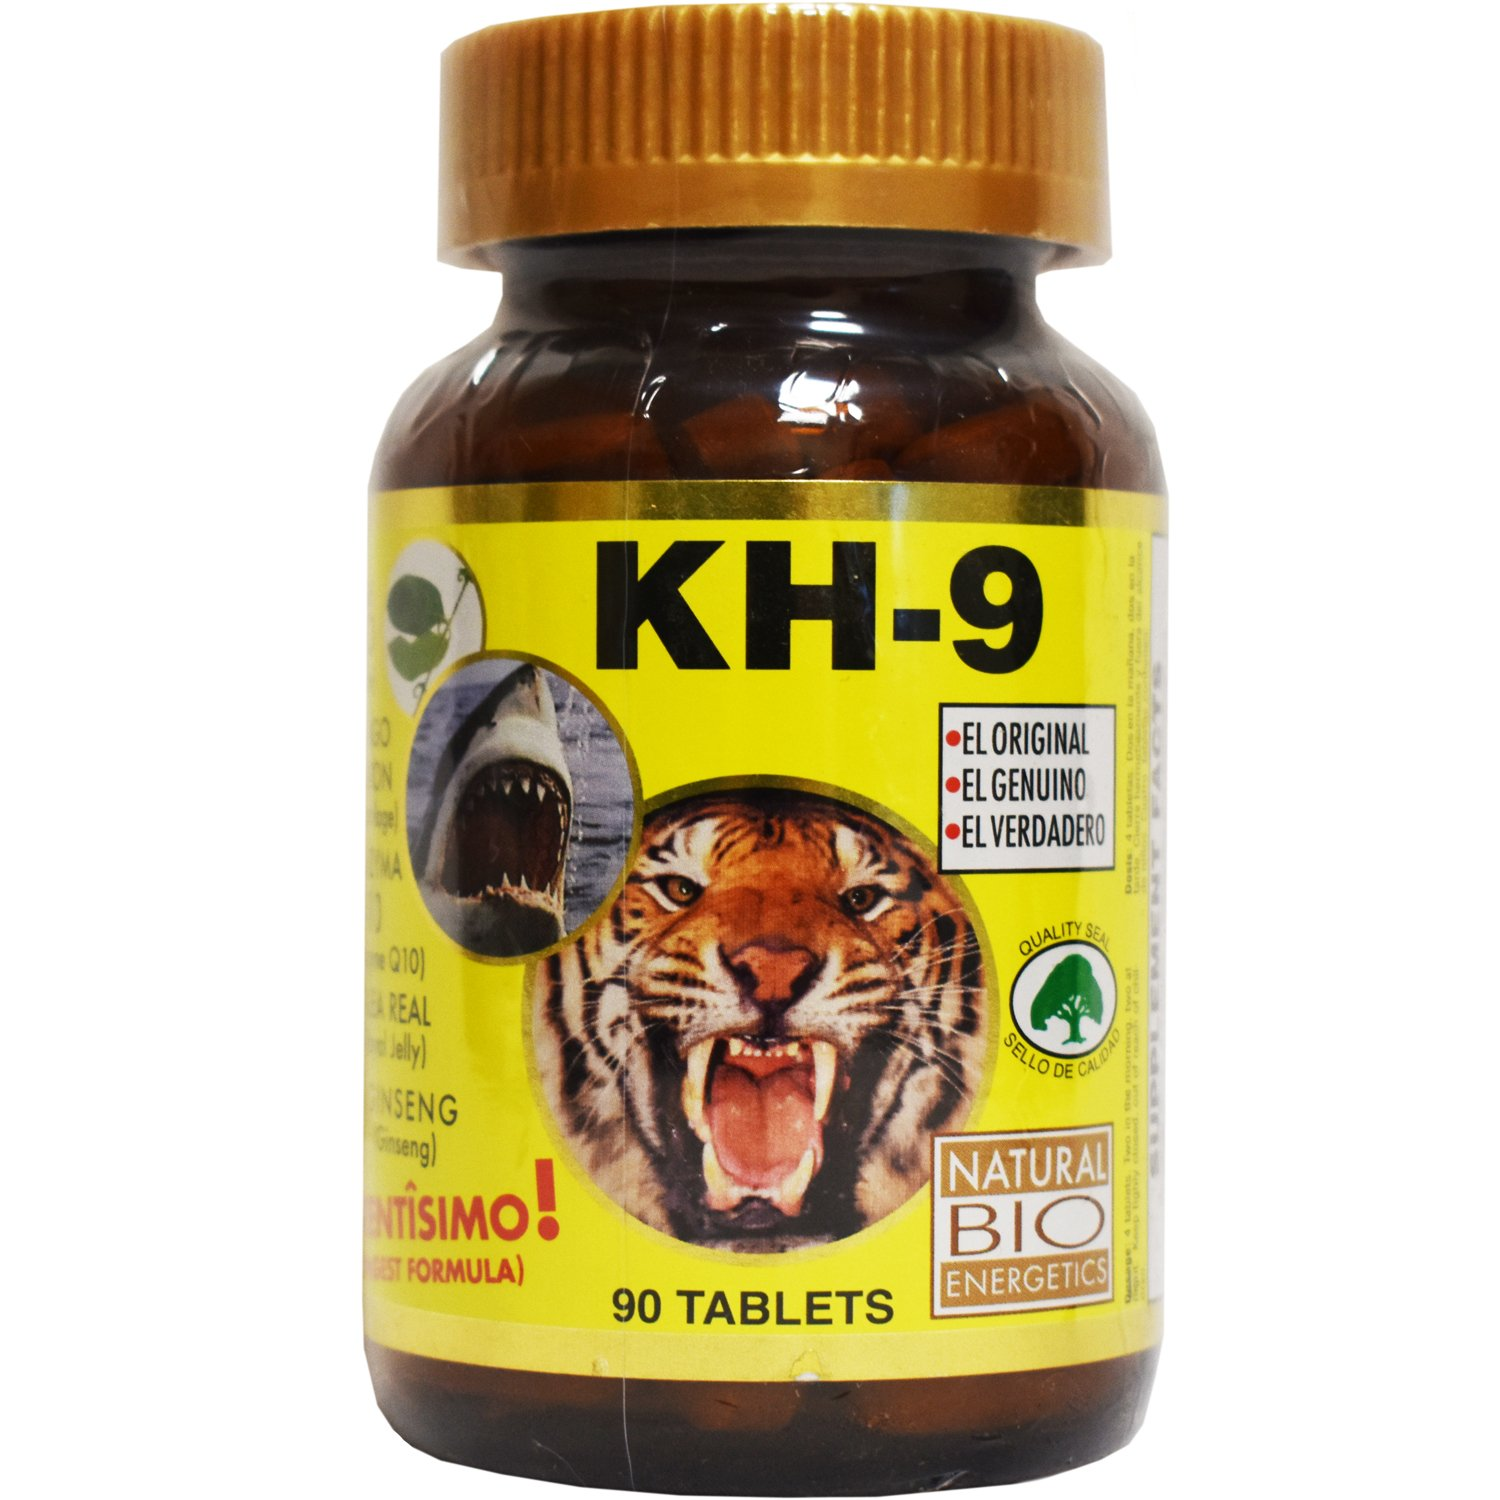 Amazon.com: Kh 9 Multivitamin Tablets Natural Bio Energetics Mineral Herb Amino Enzymes (90 Tablets): Health & Personal Care